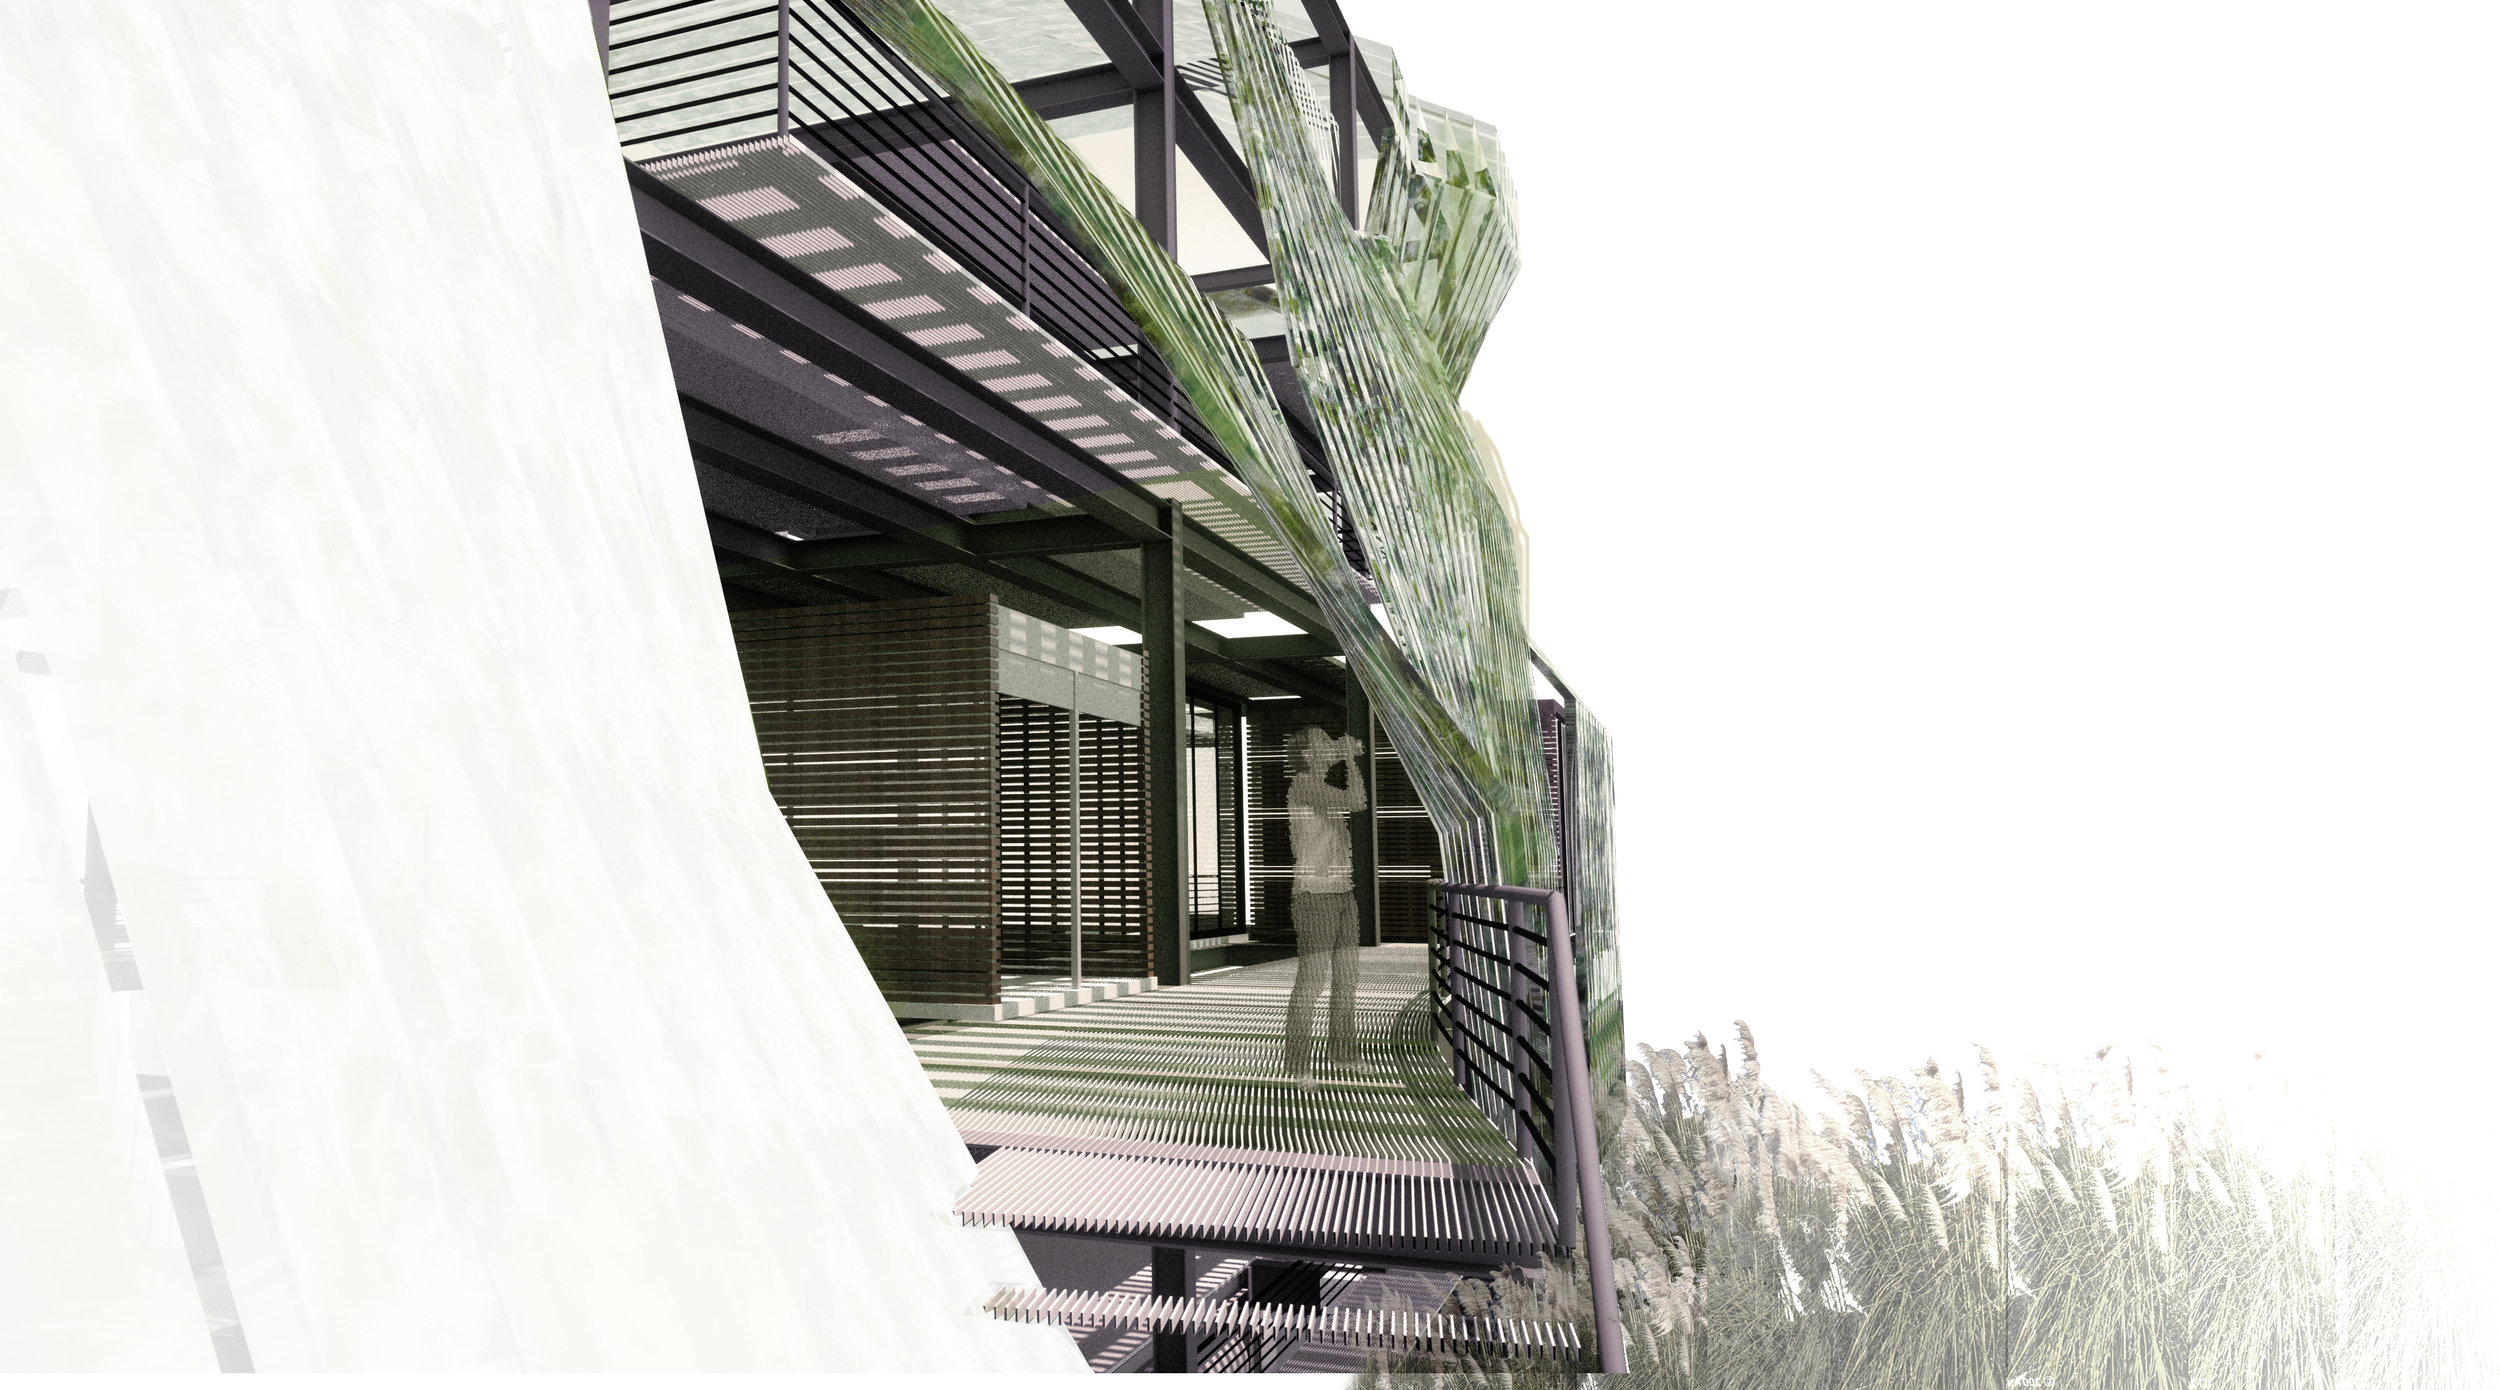 Conceptual Open-Air Office Building in South San Francisco, CA. Vertical Farming of Algae Superfood.